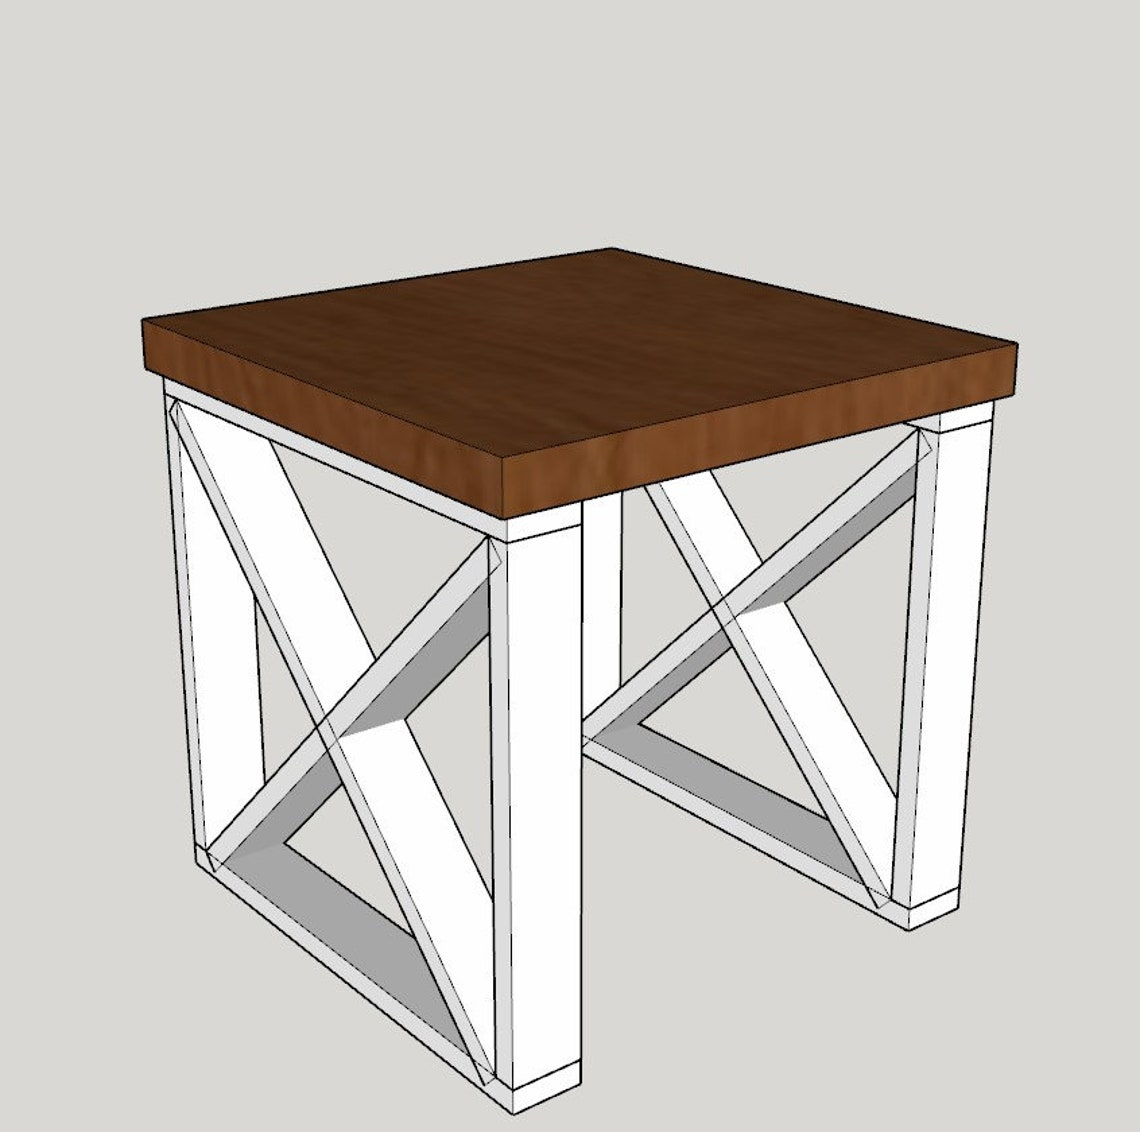 Farmhouse side table / night stand